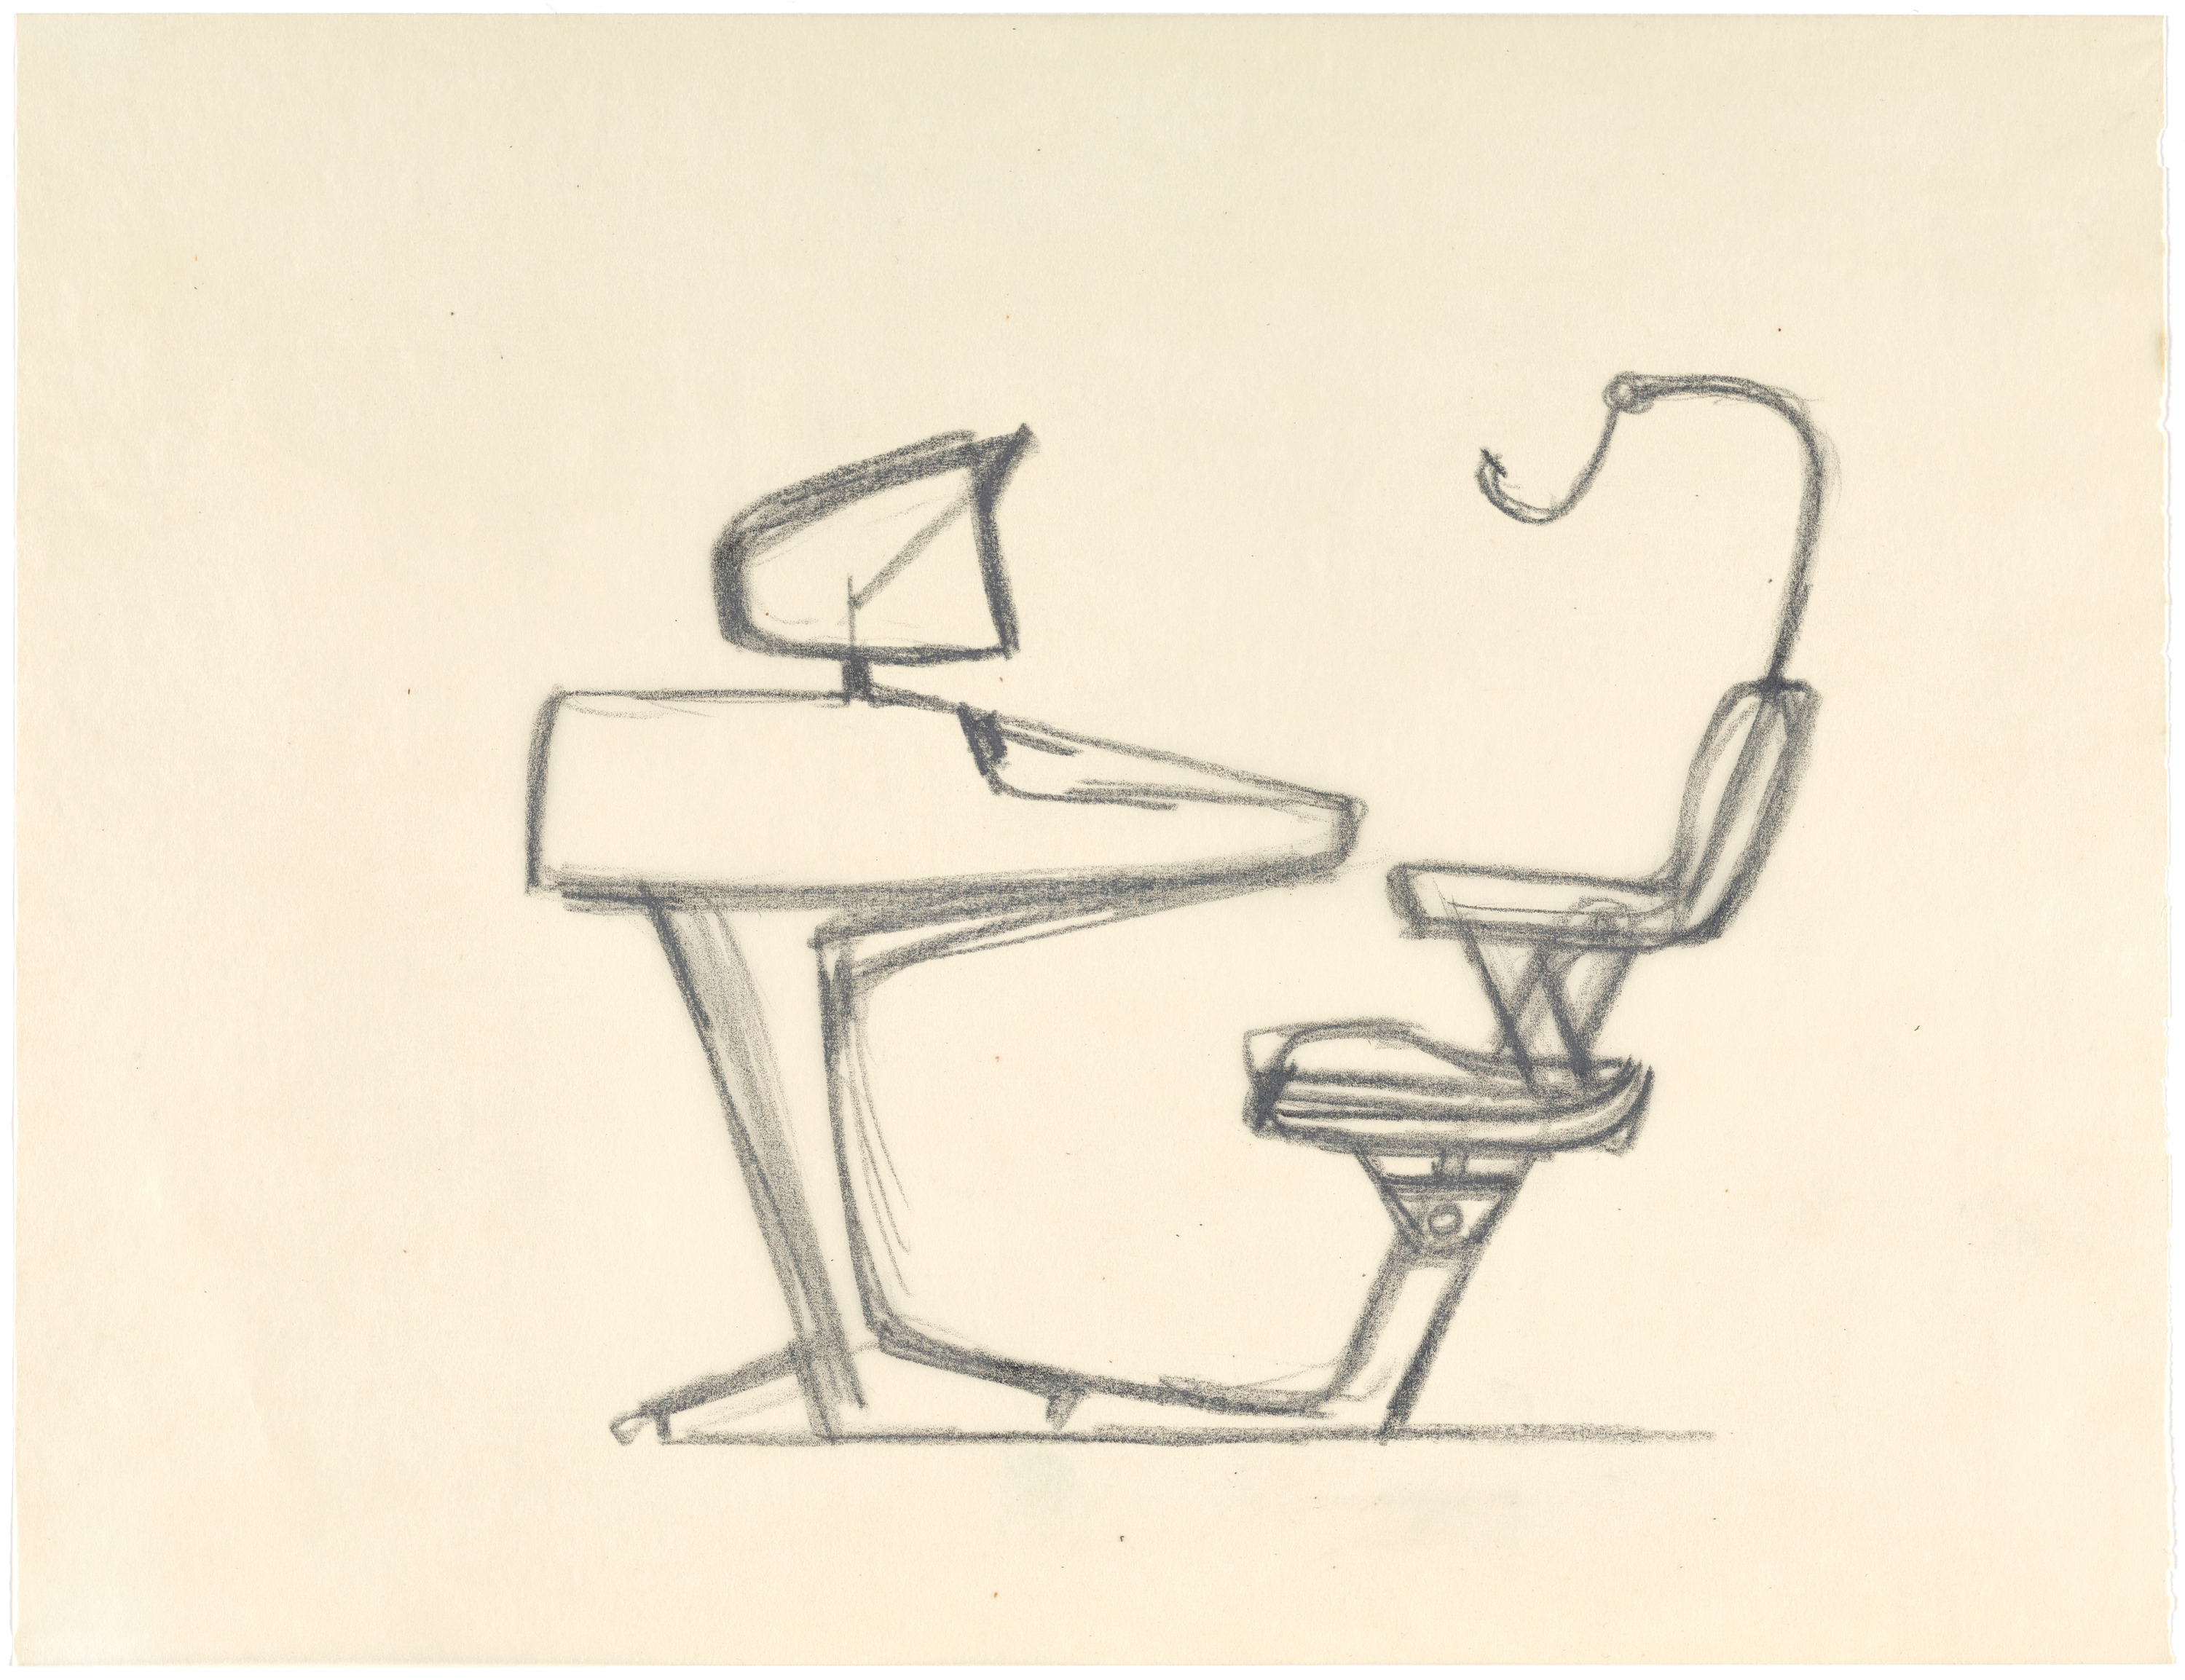 Design for an IBM work station by Gary Huxtable, 1956. Courtesy of the J Paul Getty Trust and Cantor Arts Center